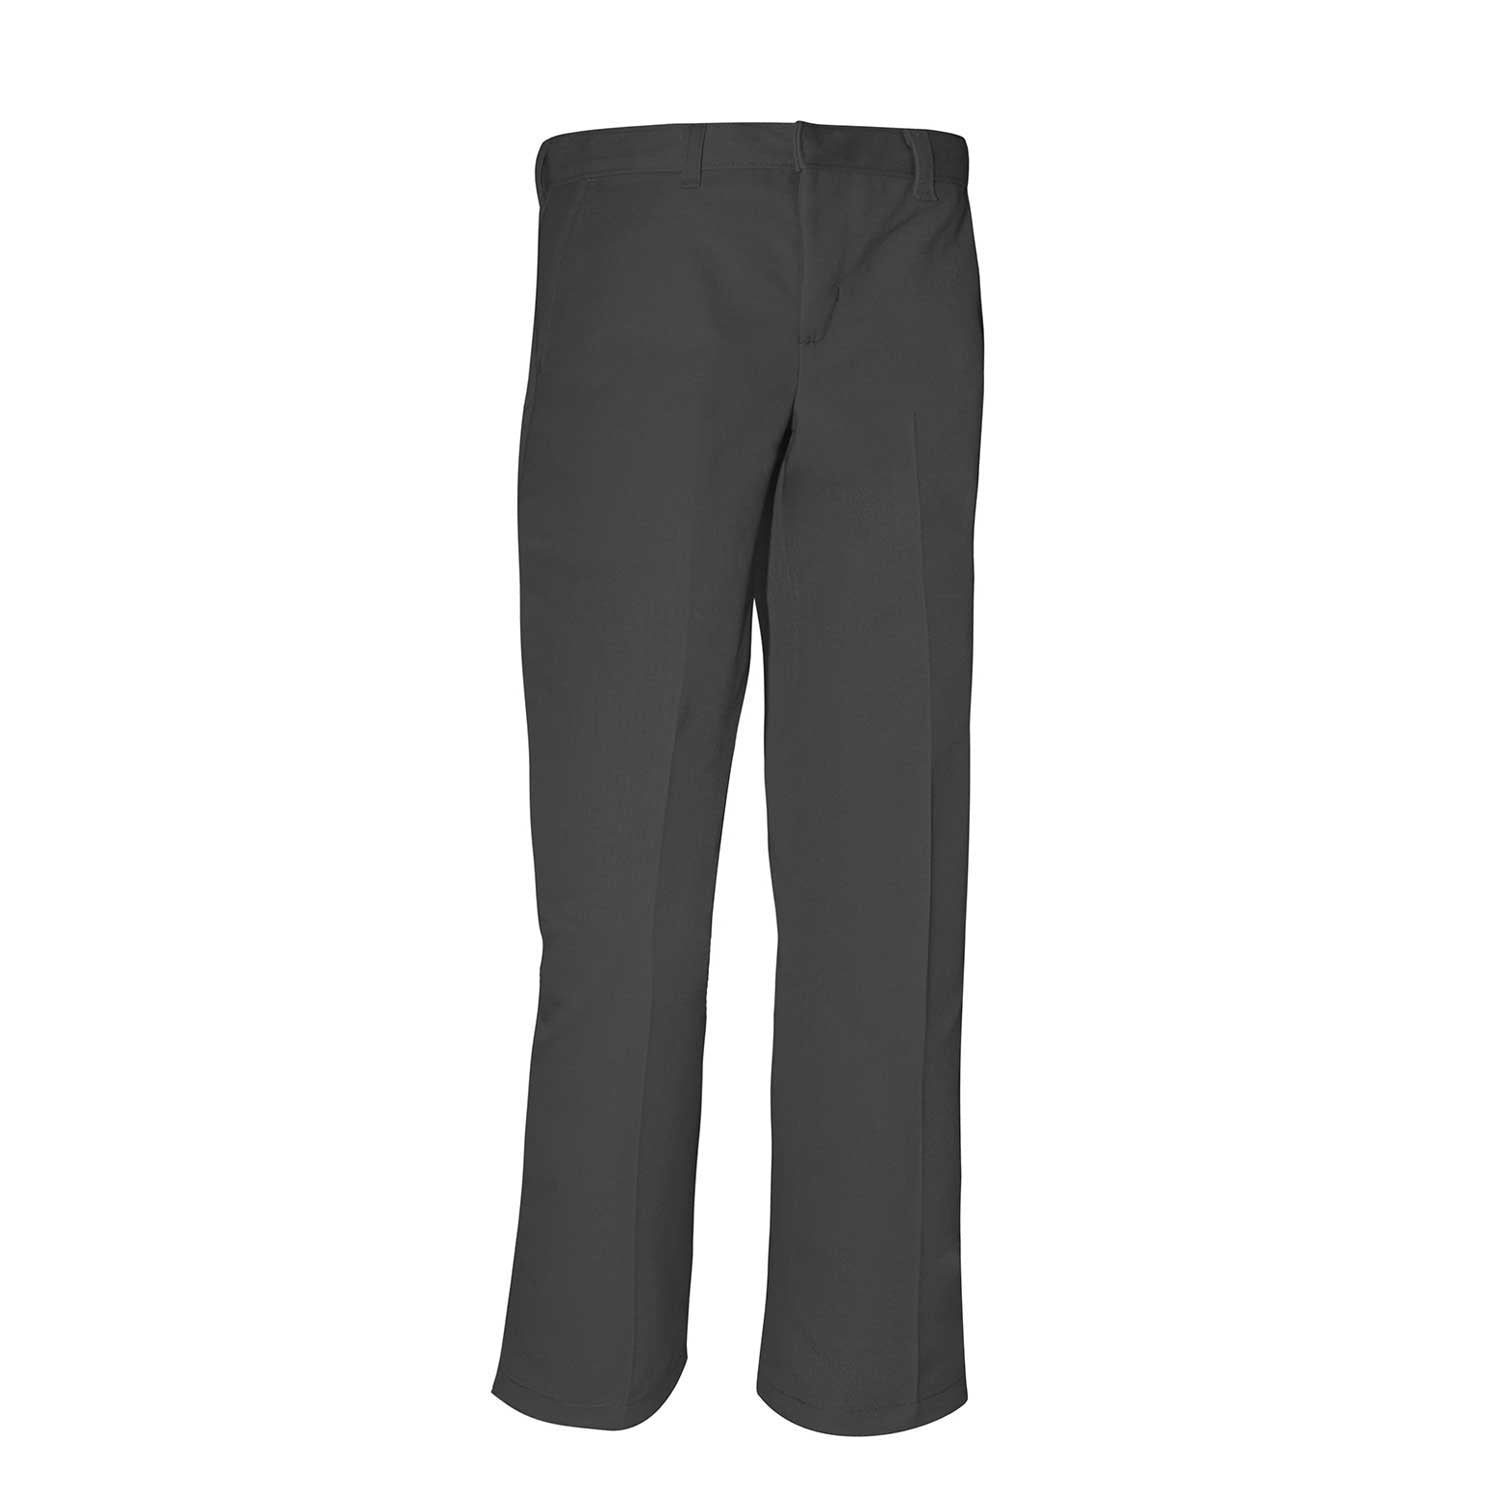 Men's Flat Front Flannel Dress Pants